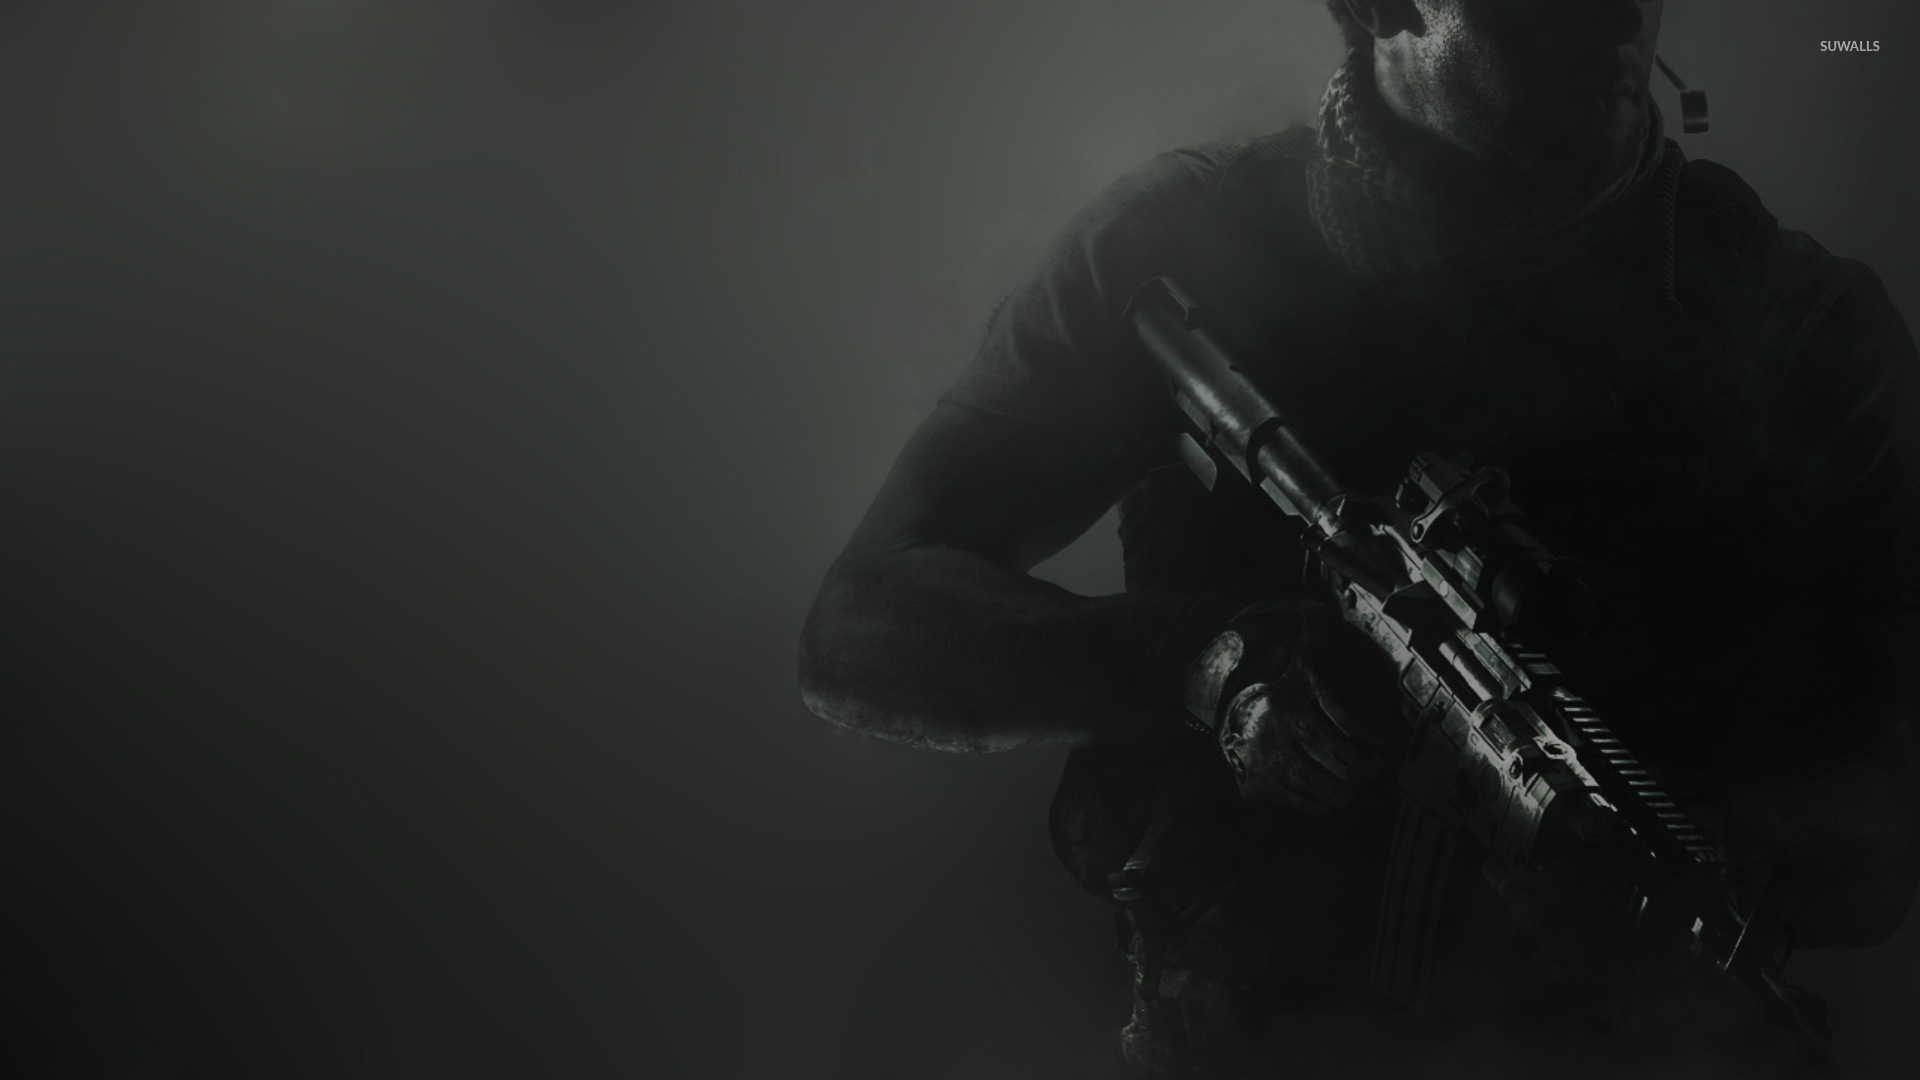 Call Of Duty Modern Warfare 3 8 Wallpaper